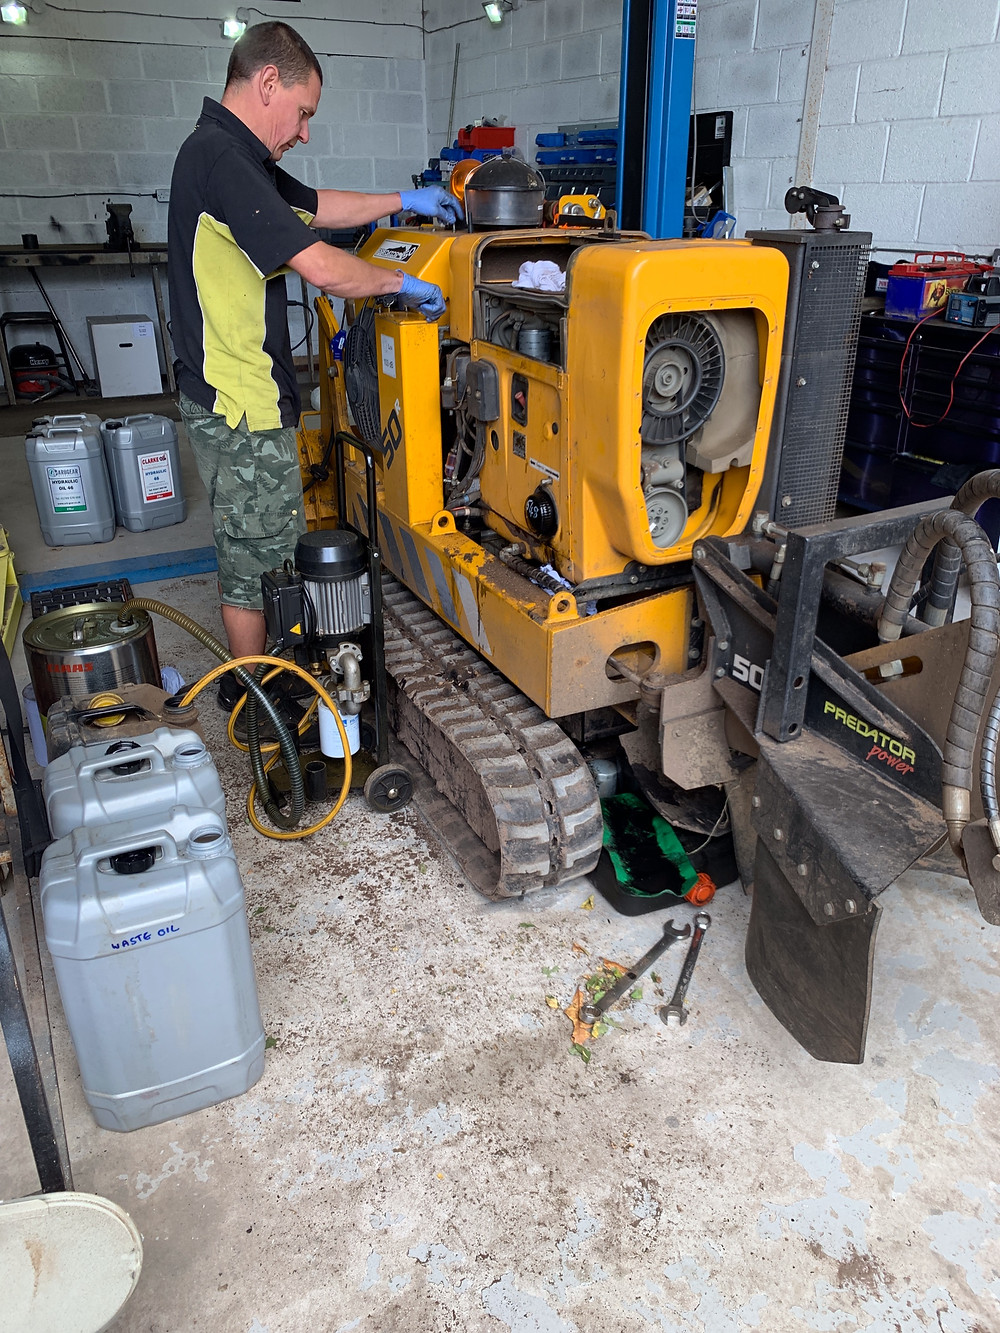 Stump grinder hydraulic oil, oils and fuel filters were replaced.